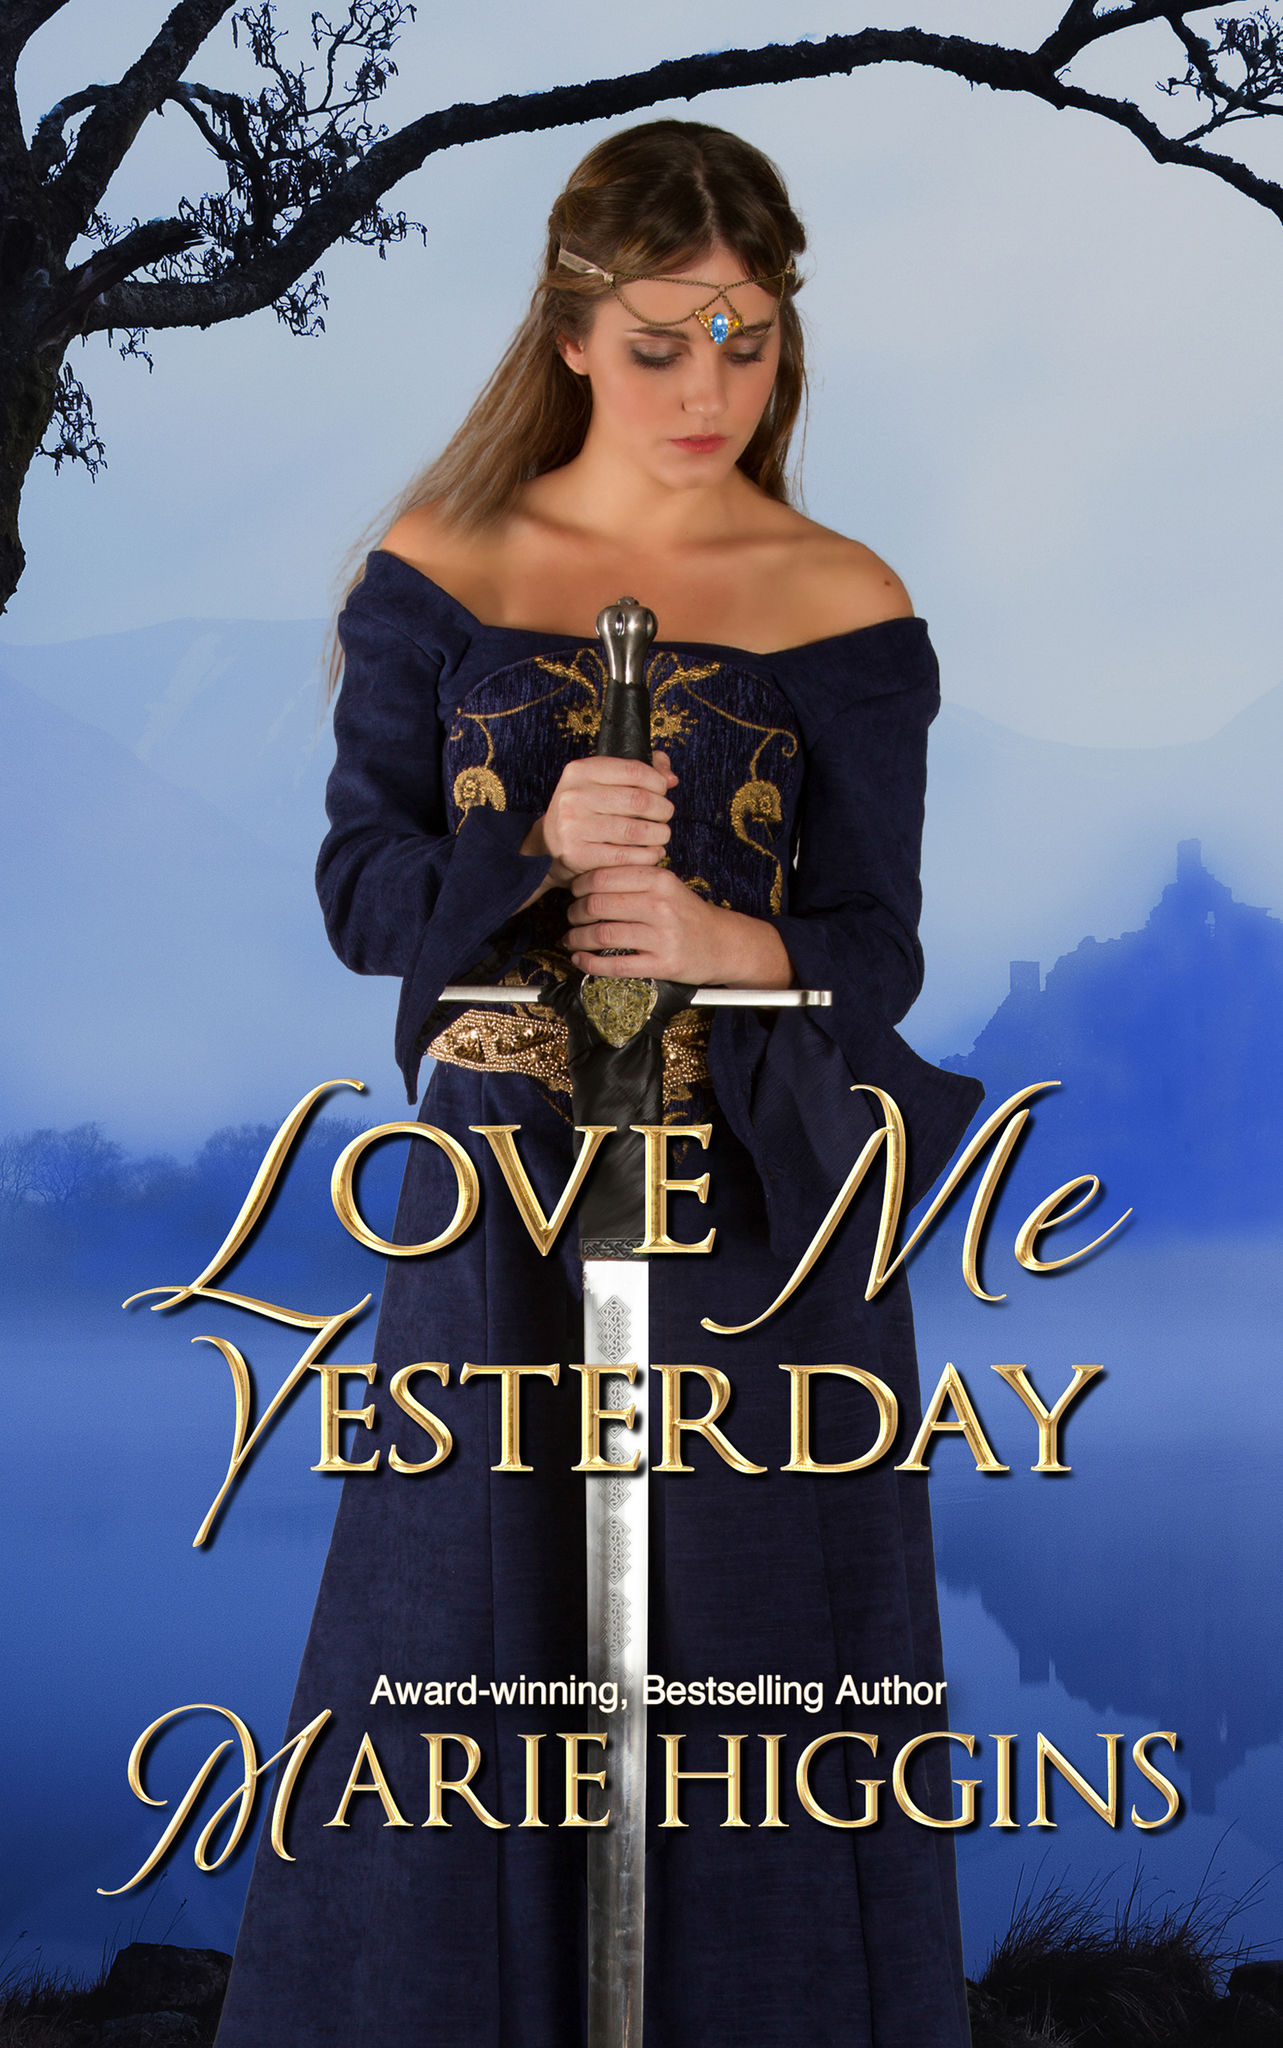 LOVE ME YESTERDAY